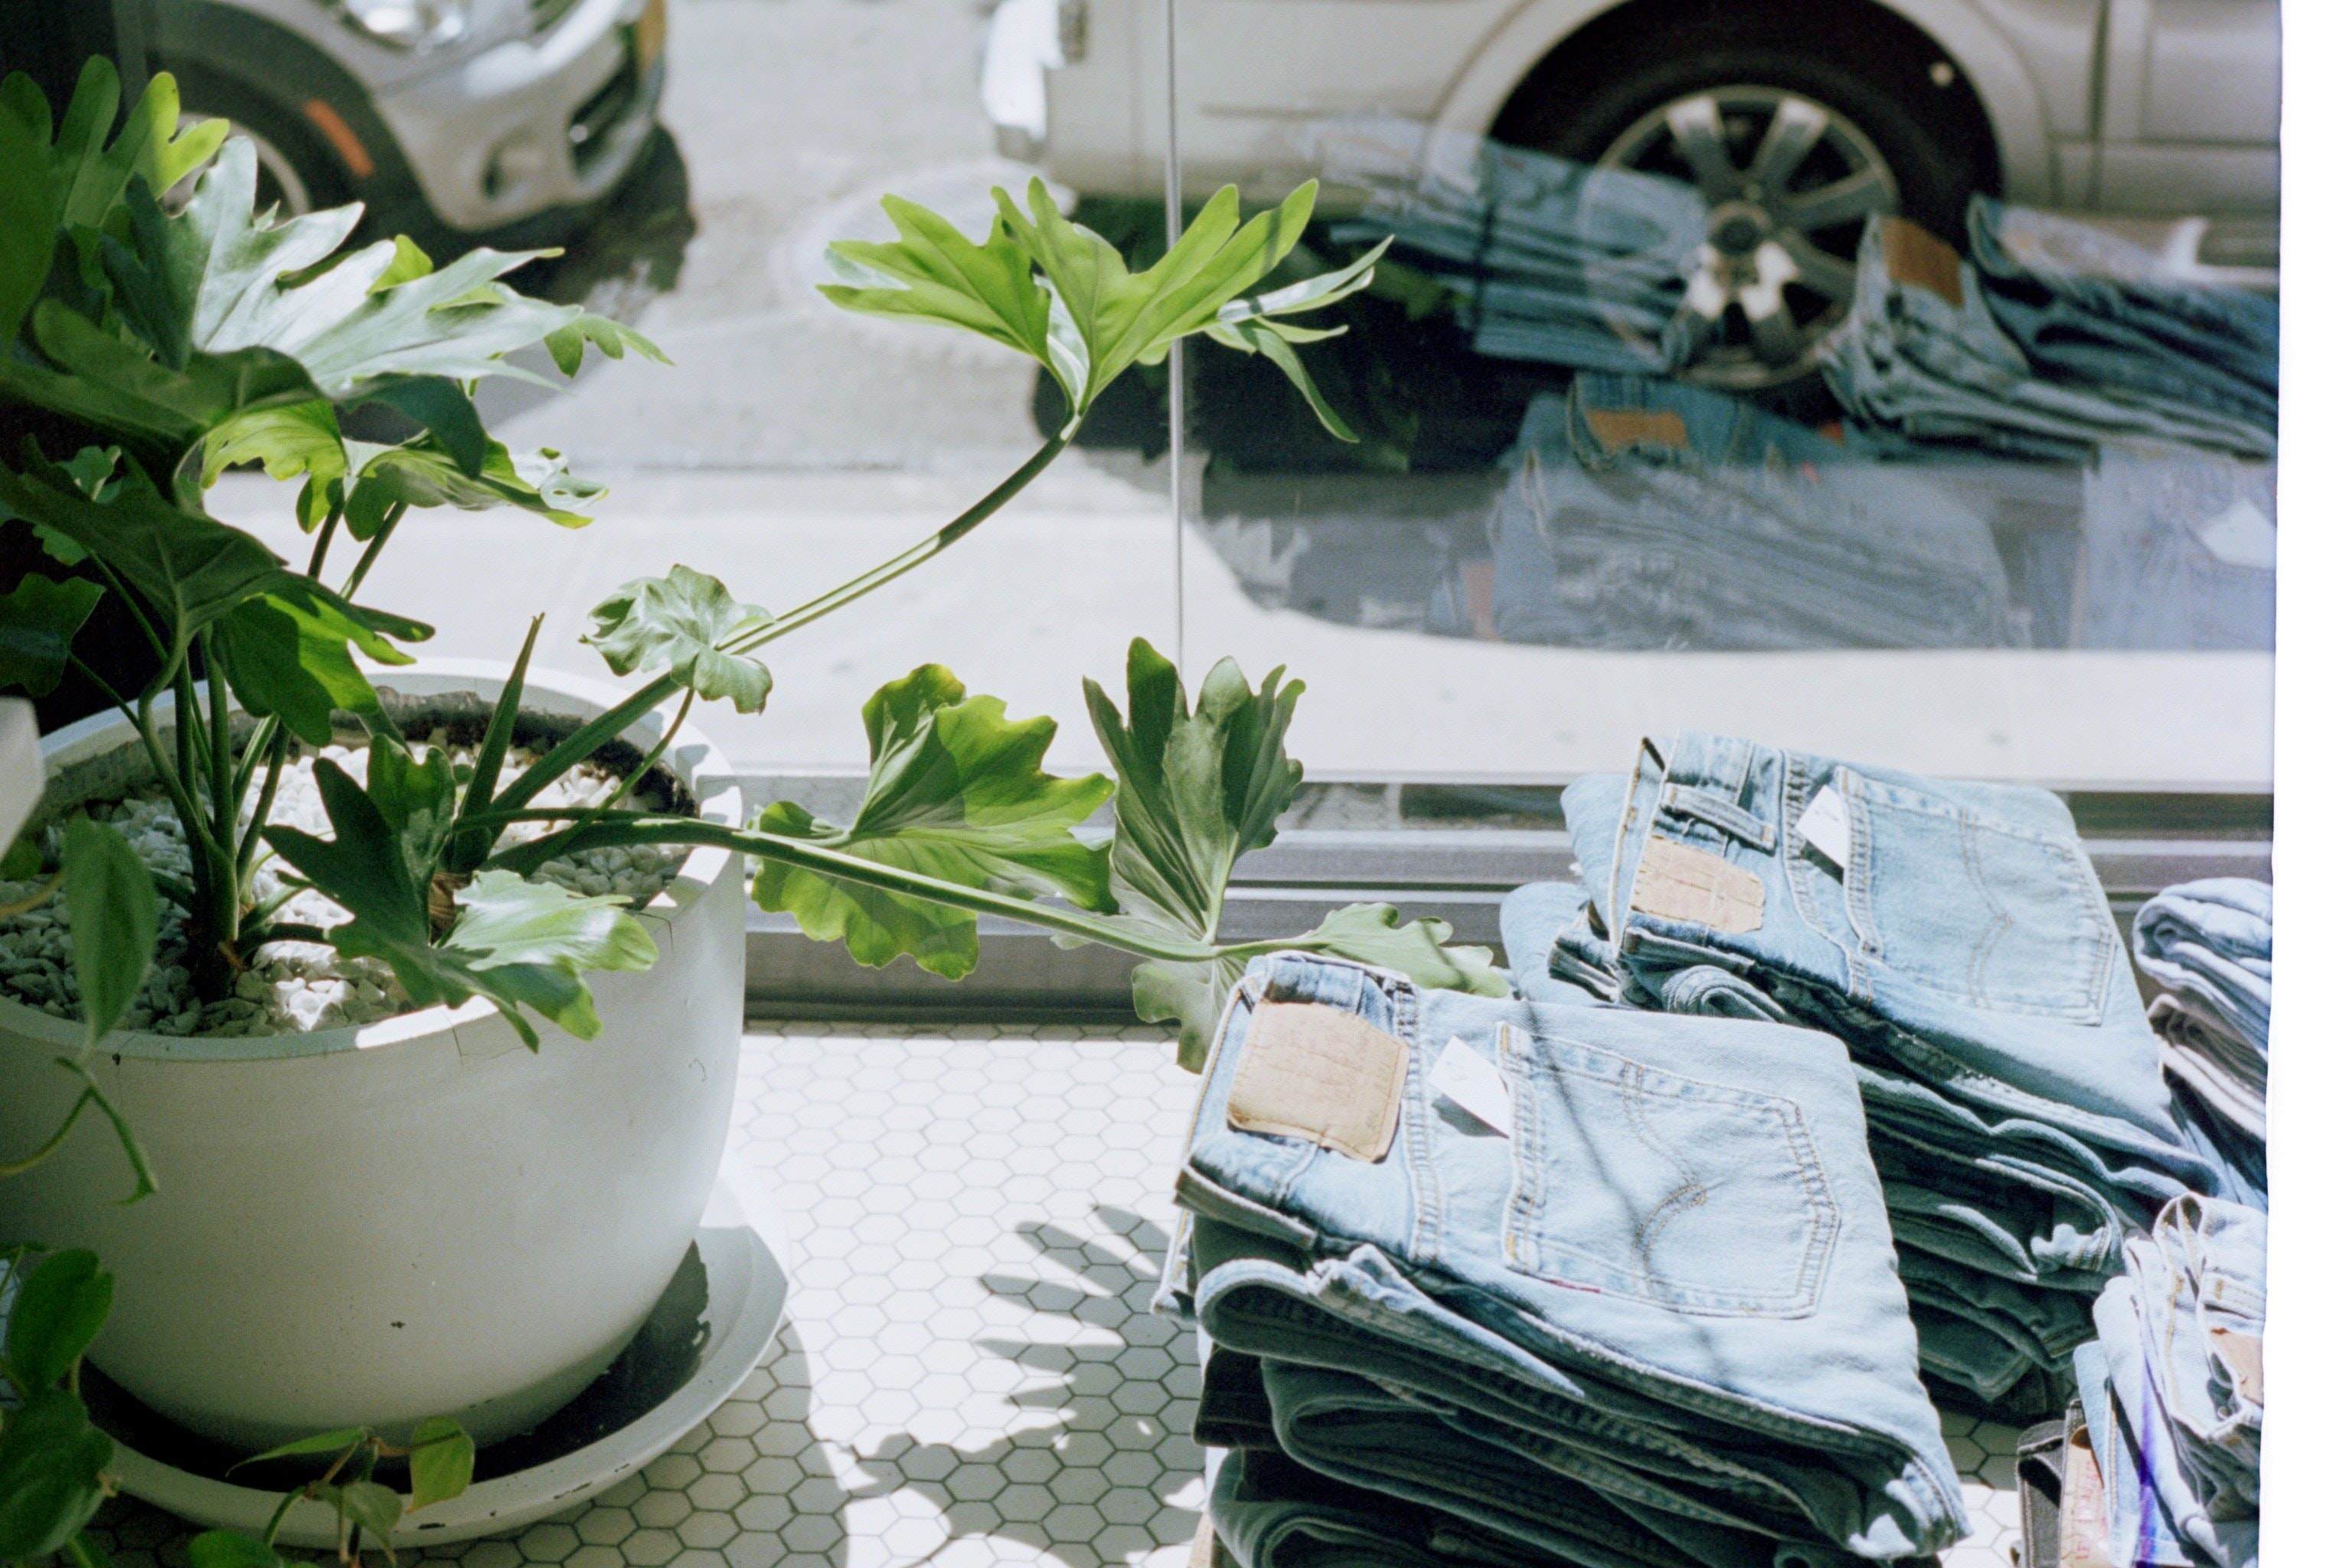 Pairs of folded jeans and a potted plant behind a window